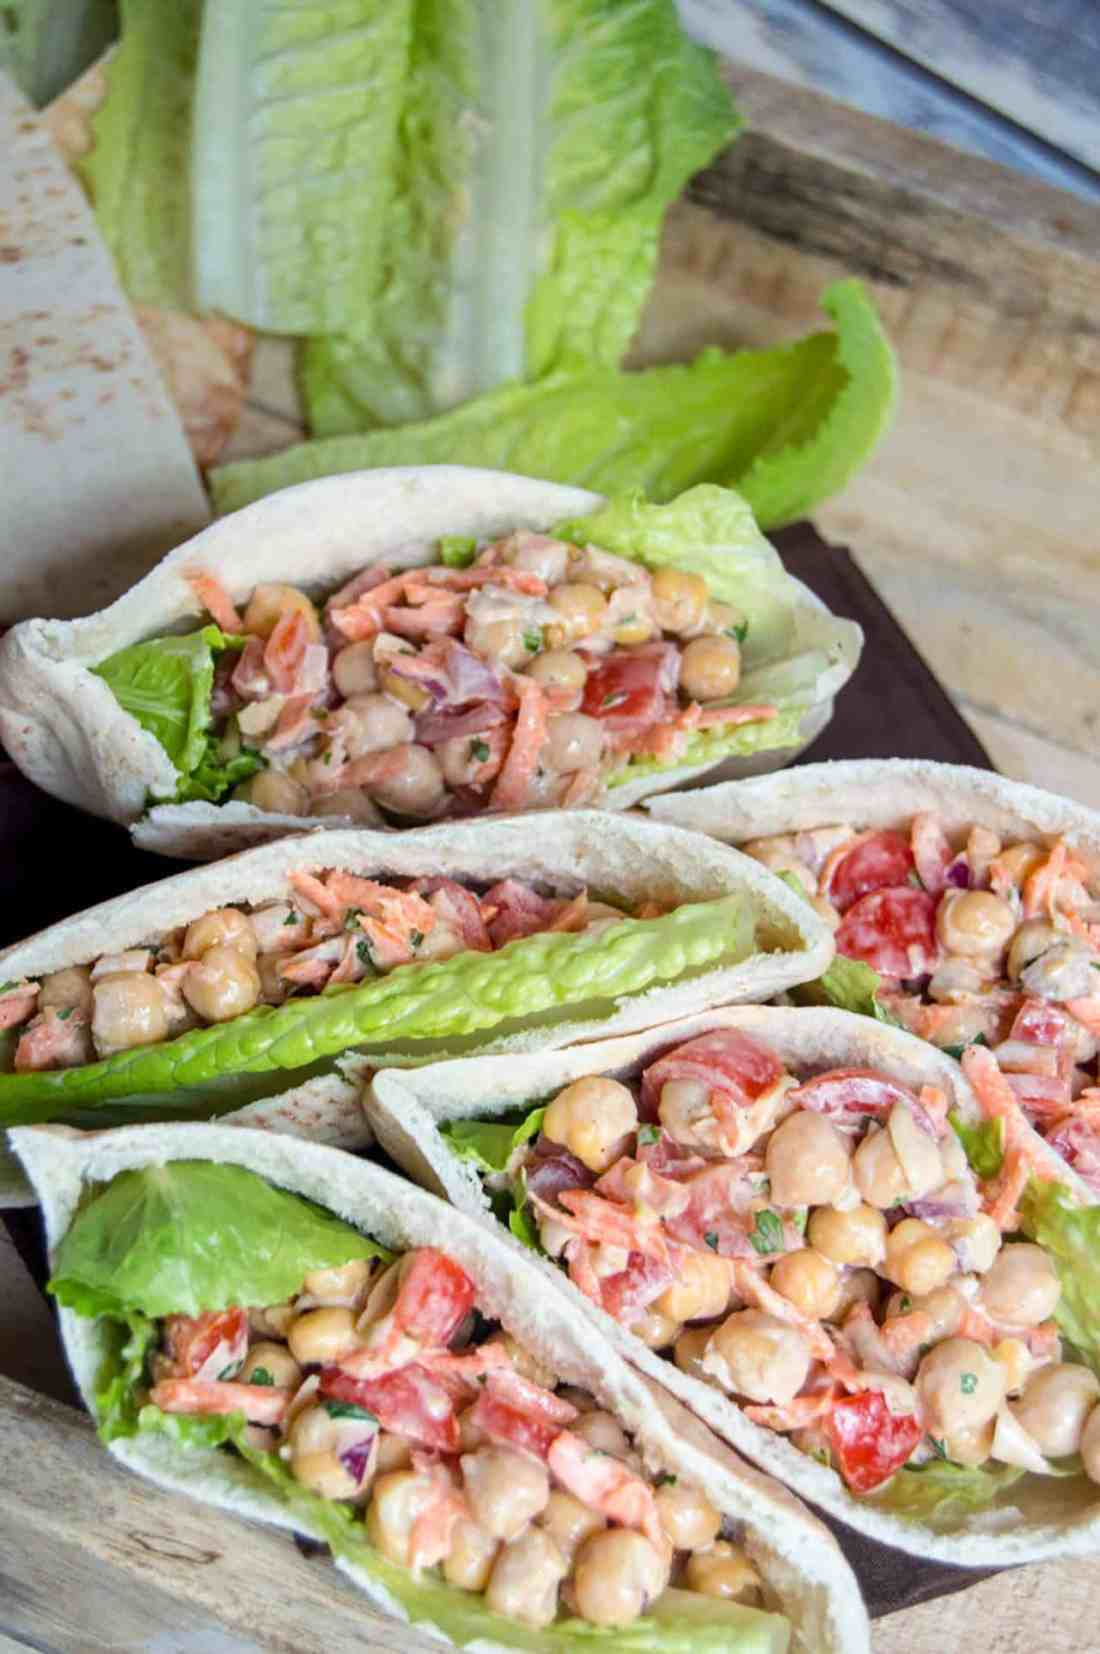 A deliciously filling, yet light lunch or dinner for the the whole family. These chickpea and veggie pitas sneak in a generous serving of vegetables and protein and will have everyone coming back for more!